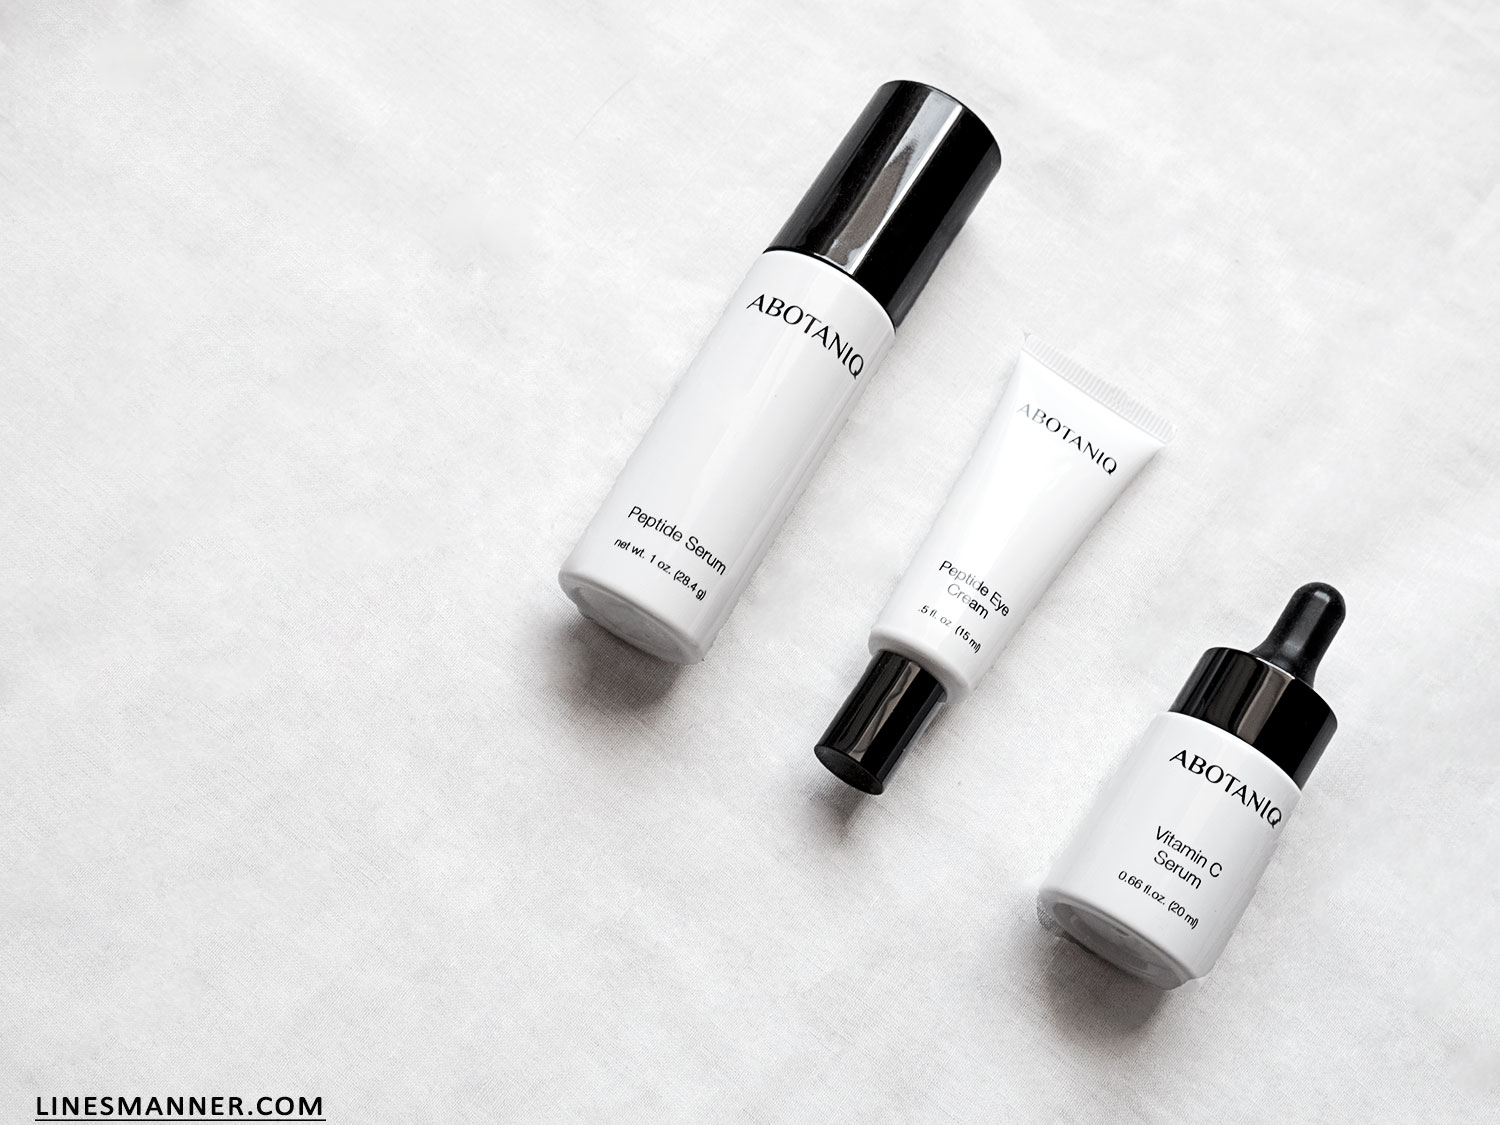 Lines-Manner-Abotaniq-Skin_Care-Natural-Science-Technology-Beauty-Quality-Authentic-Skins-Peptides-Antioxidant-Fresh-Black_and_White-Essentials-Expert-5